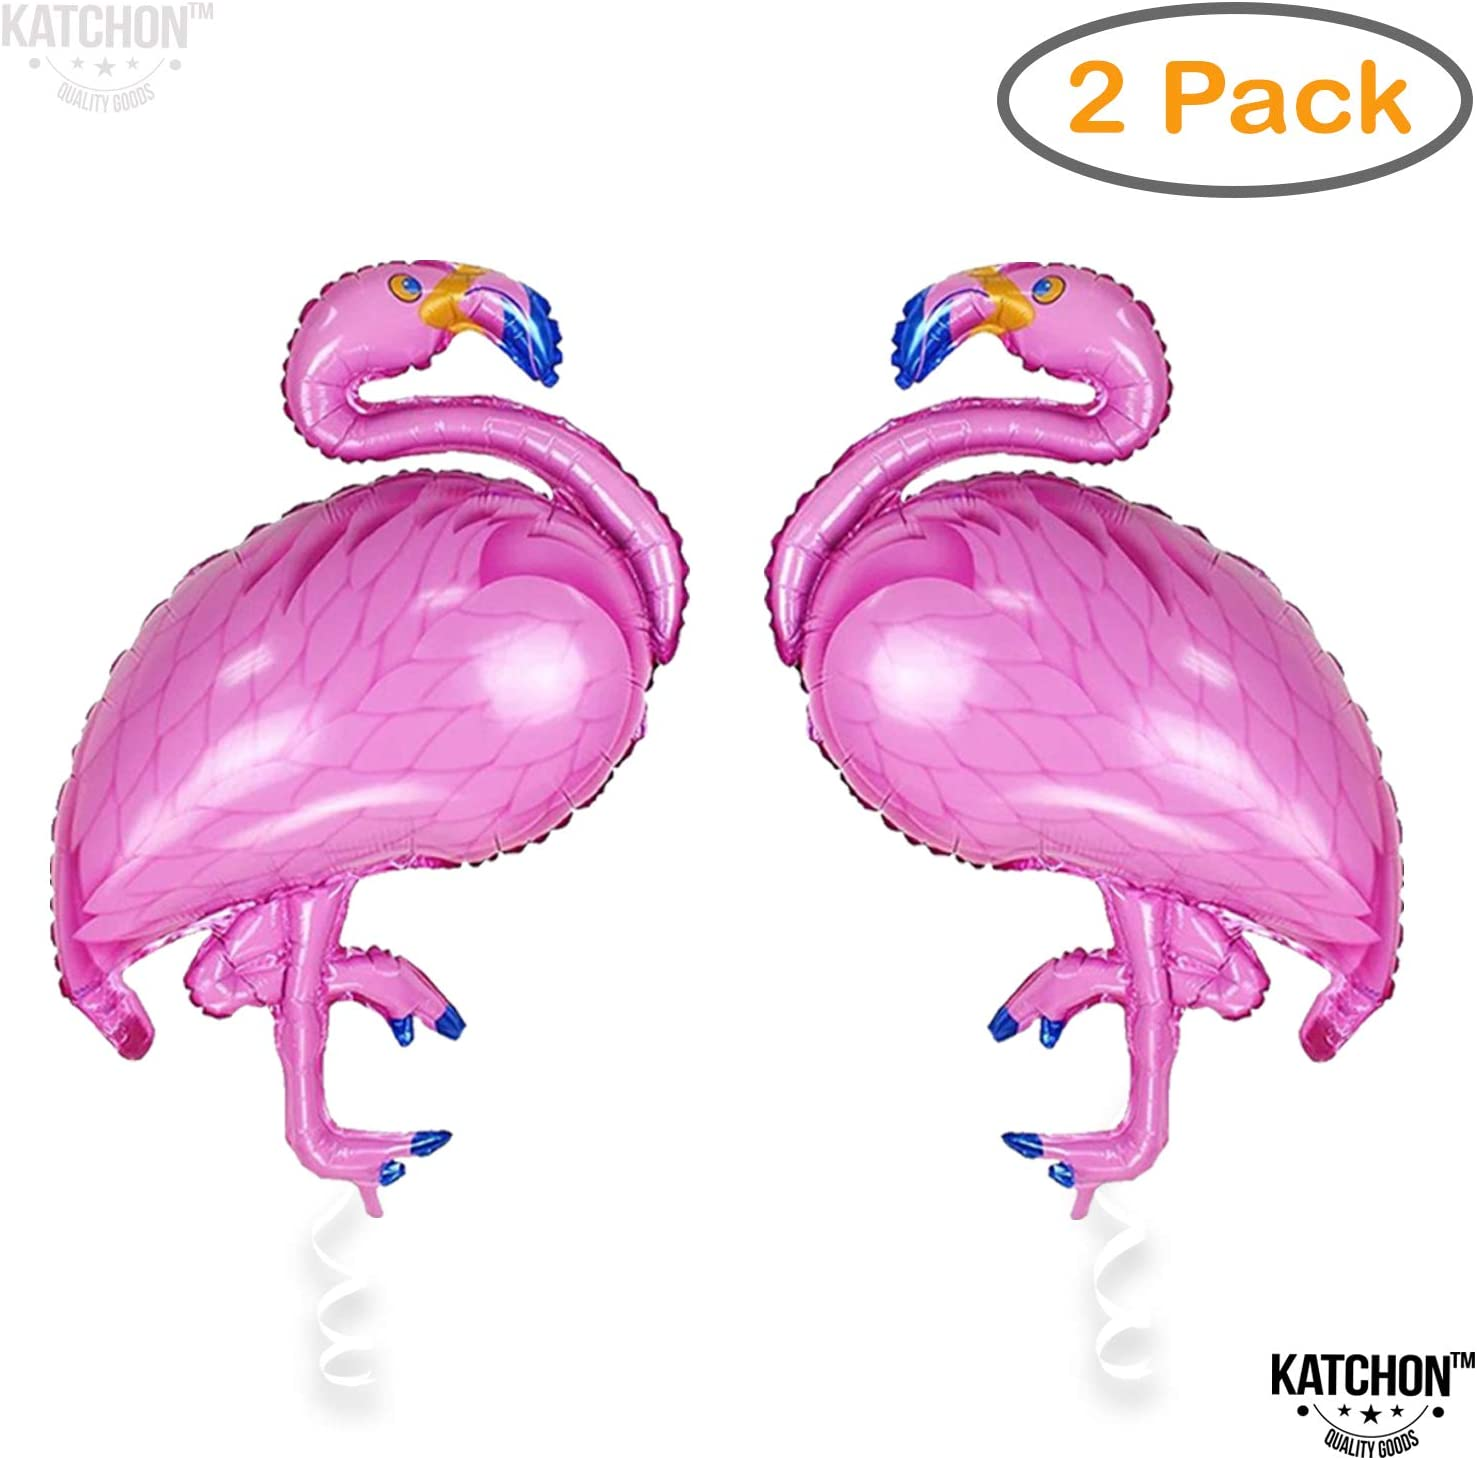 2 Giant Flamingo Helium Balloon - Pack of 2 | Pink Flamingo Mylar Foil Balloon | Flamingo Party Supplies | Flamingo Birthday Party | Flamingo Decor for Bridal and Baby Shower